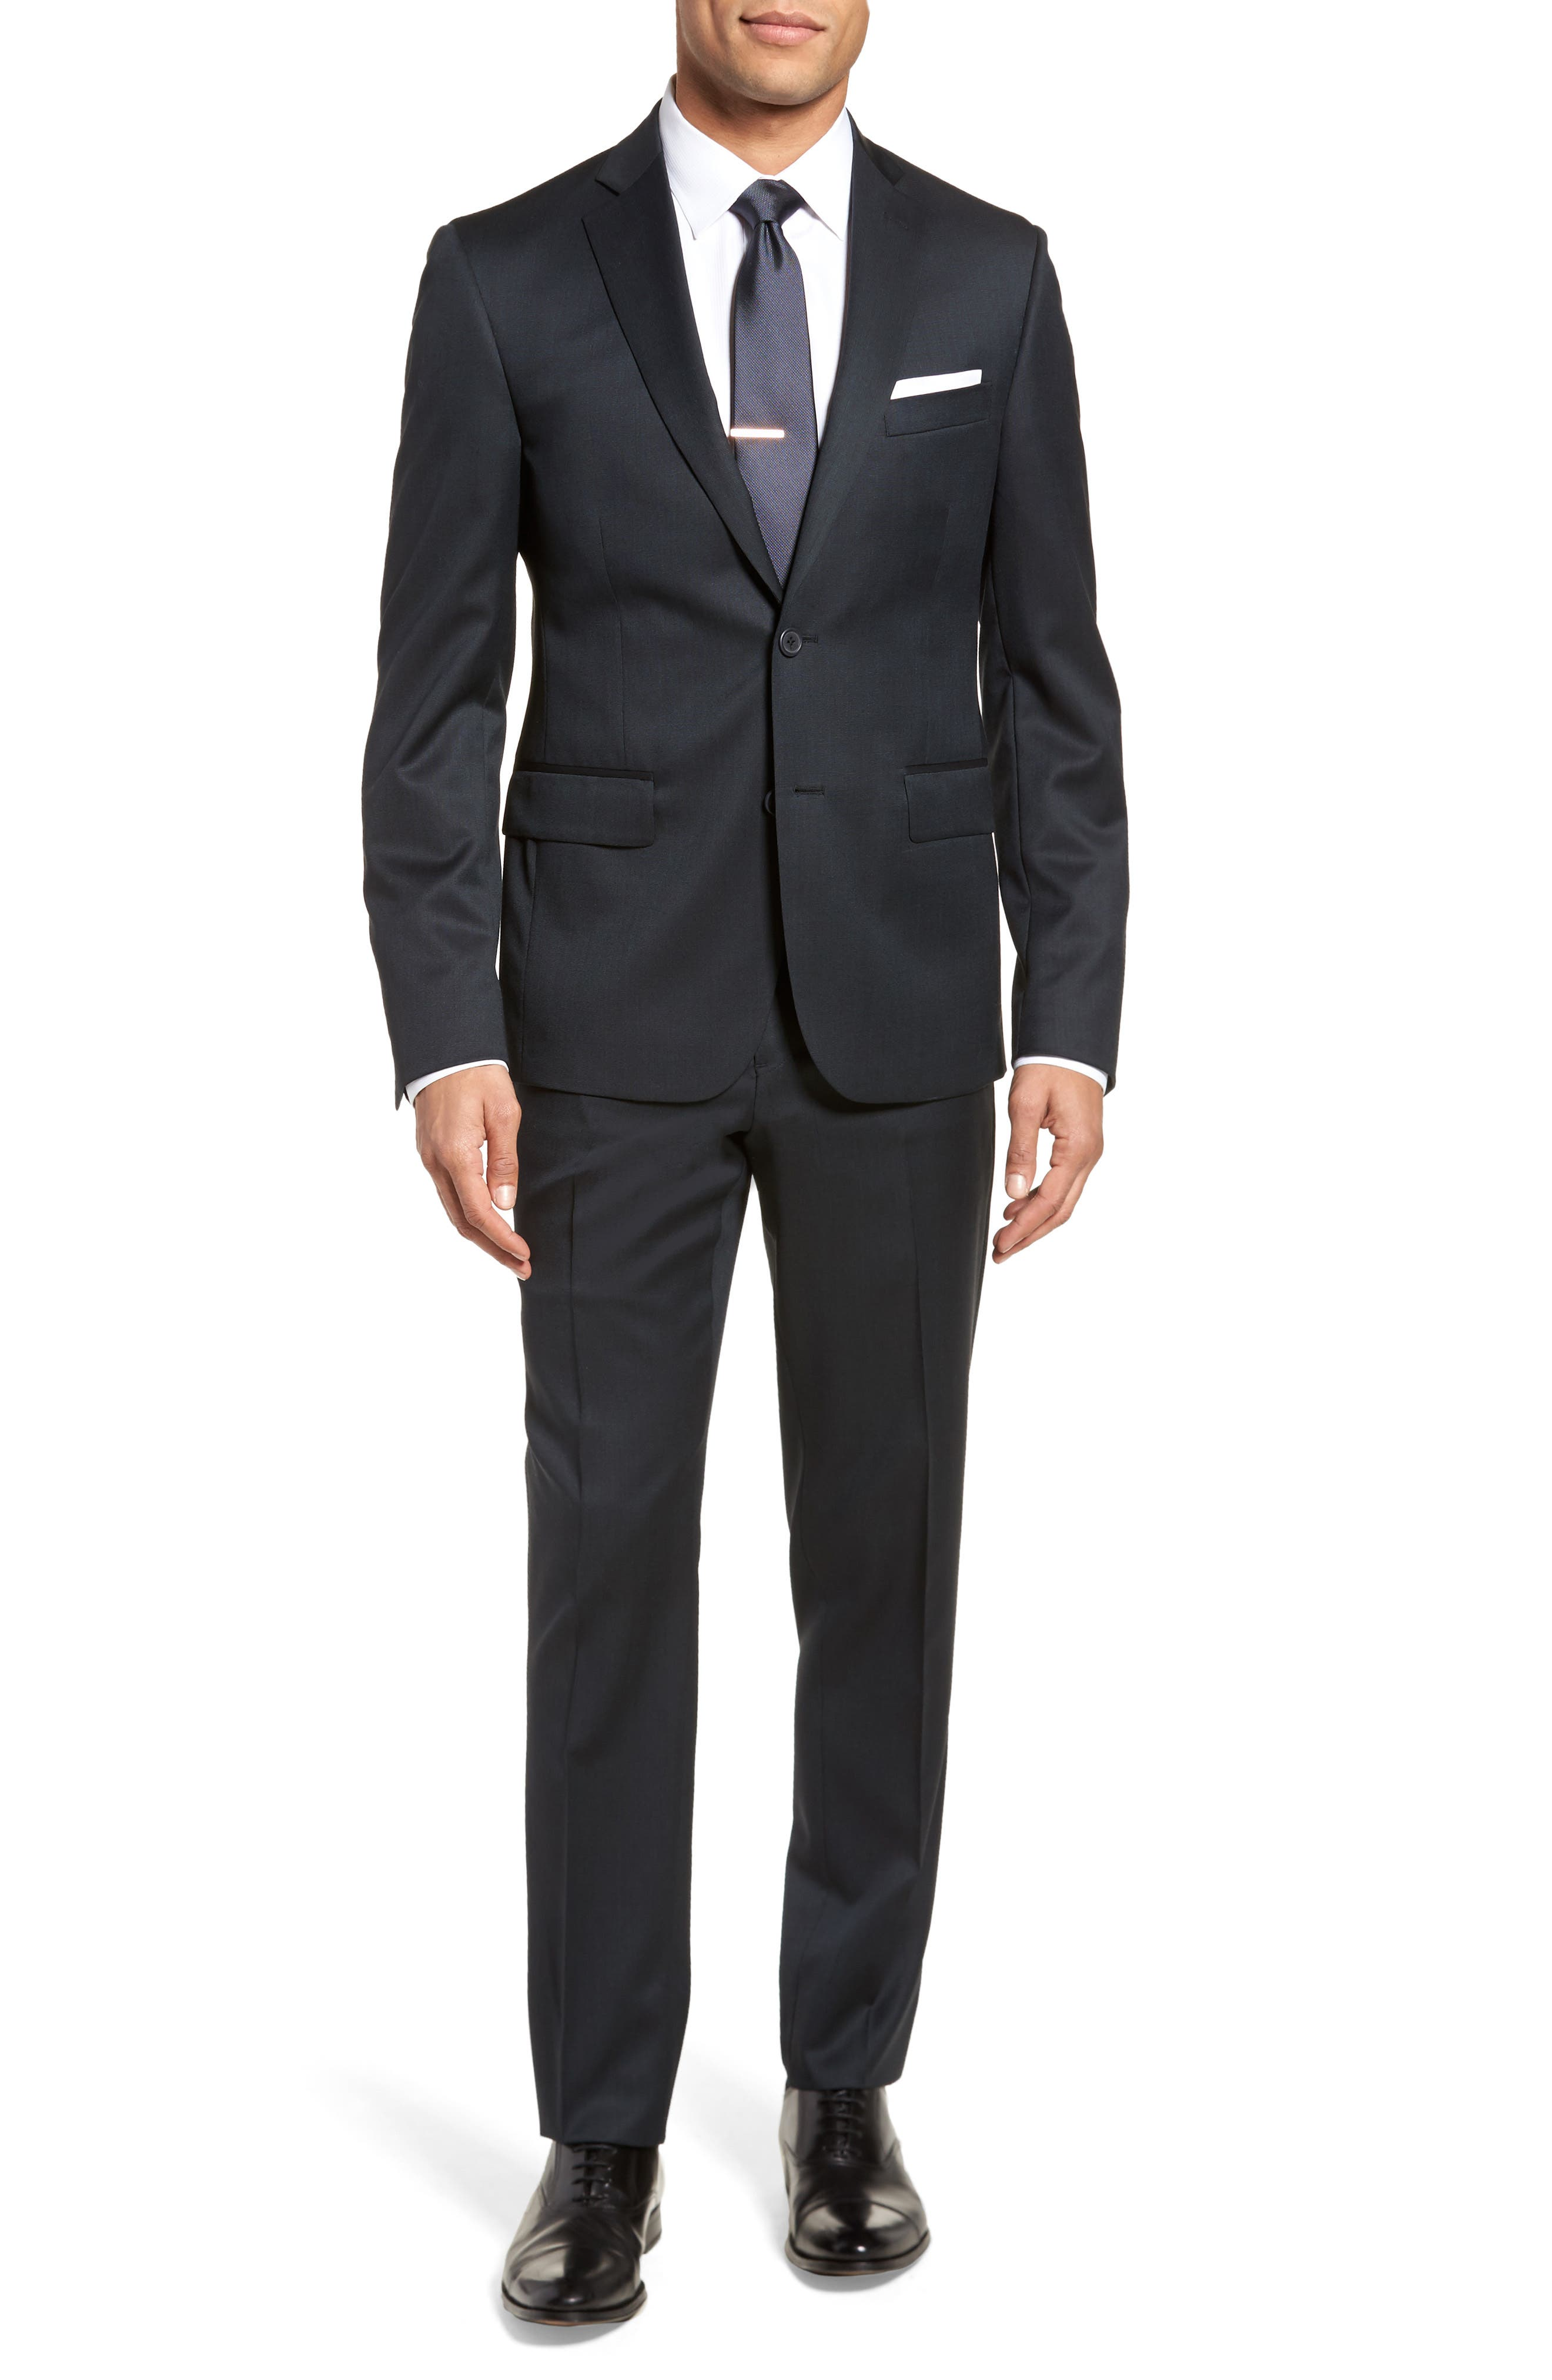 Alternate Image 1 Selected - Nordstrom Men's Shop Extra Trim Fit Solid Wool Suit